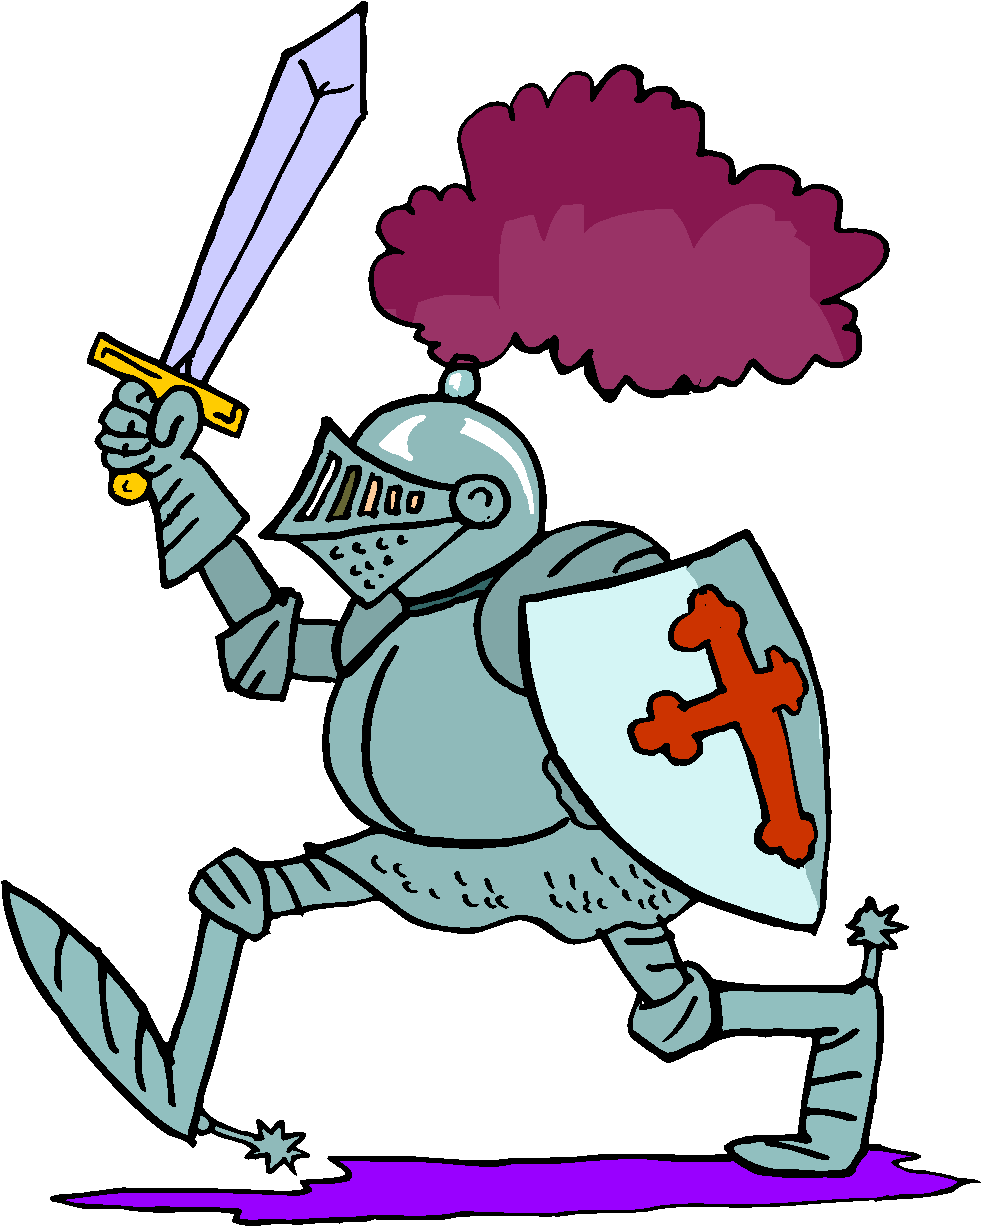 clipart knight. knight medieval kingdom legendary armored.